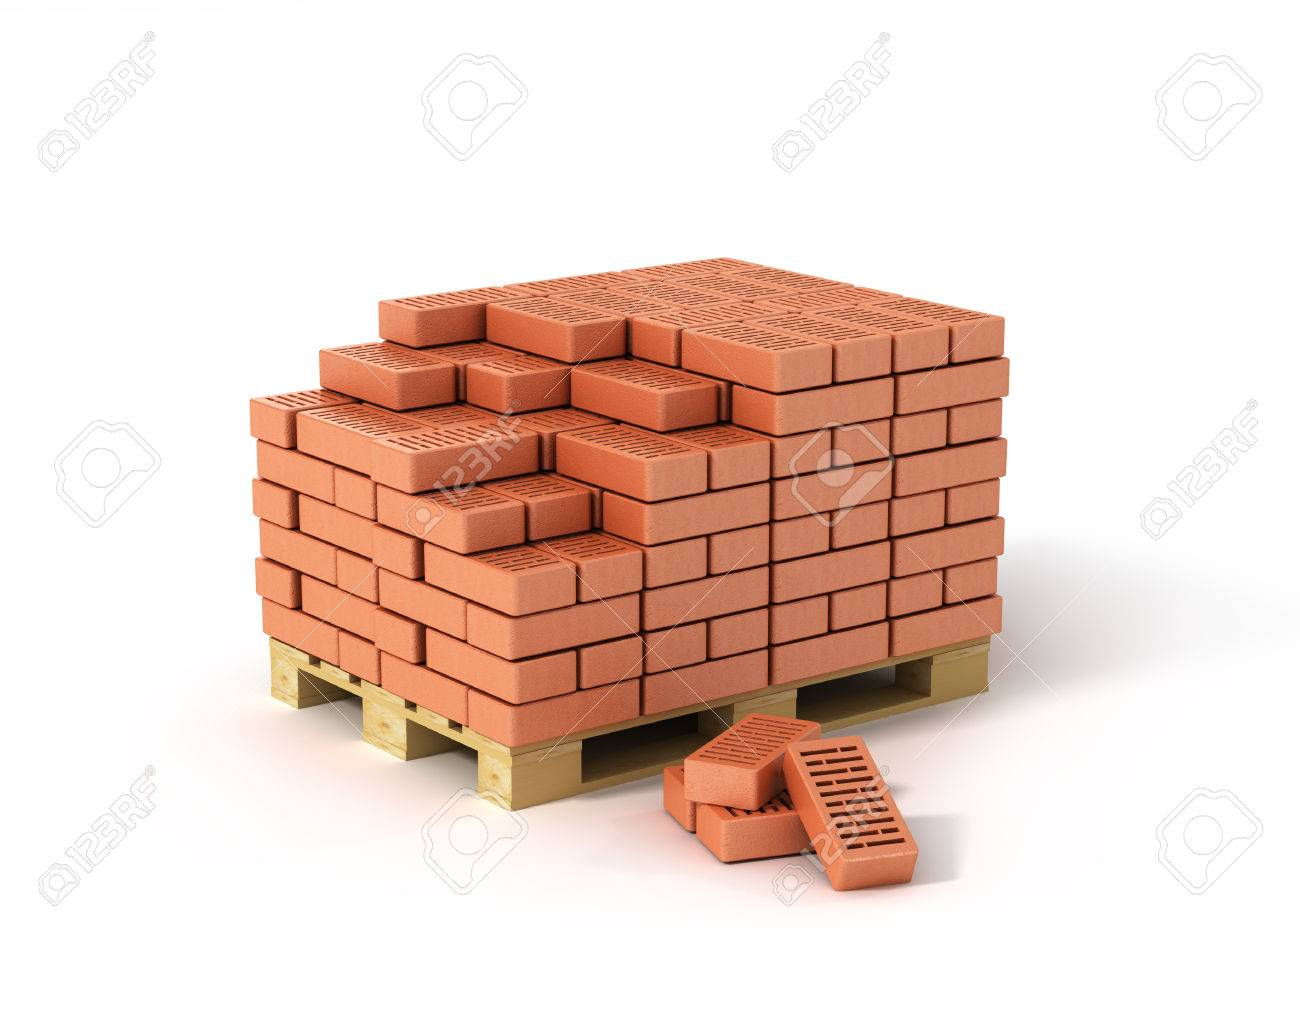 Red Bricks Stacked On Wooden Pallet Isolated On White Background Stock Photo Picture And Royalty Free Image Image 40336957